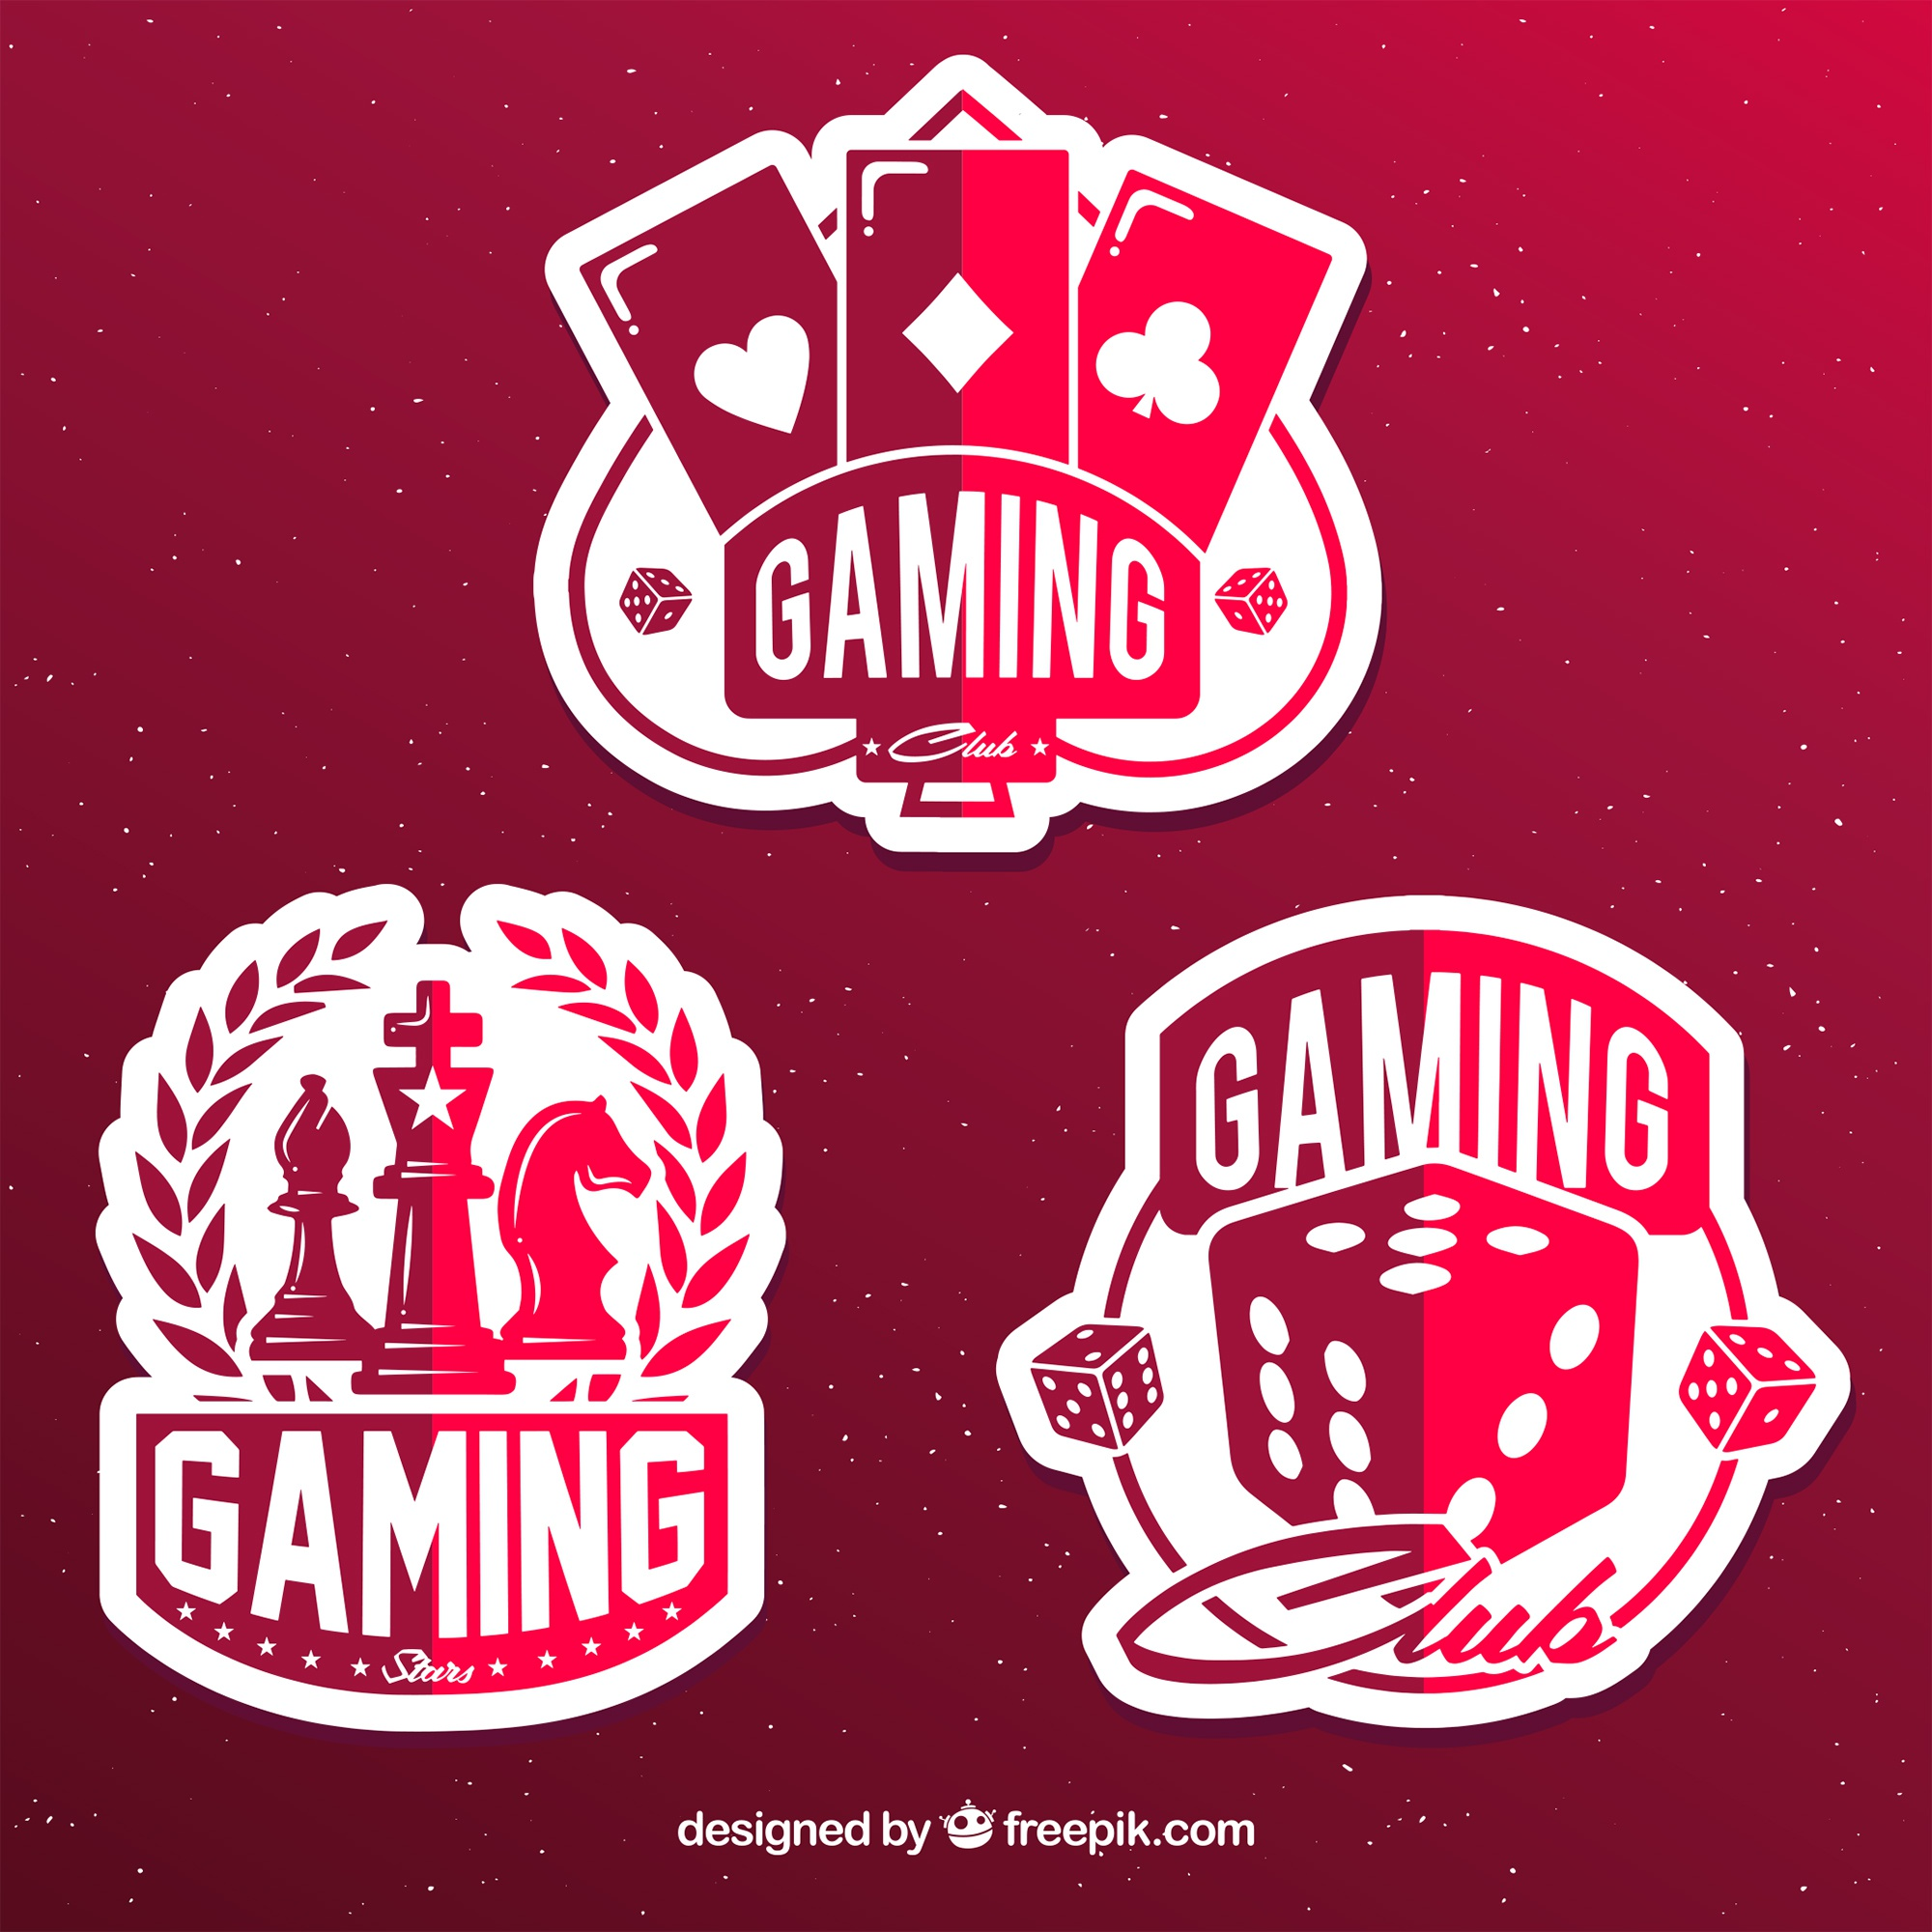 Gambling icon collection with flat design